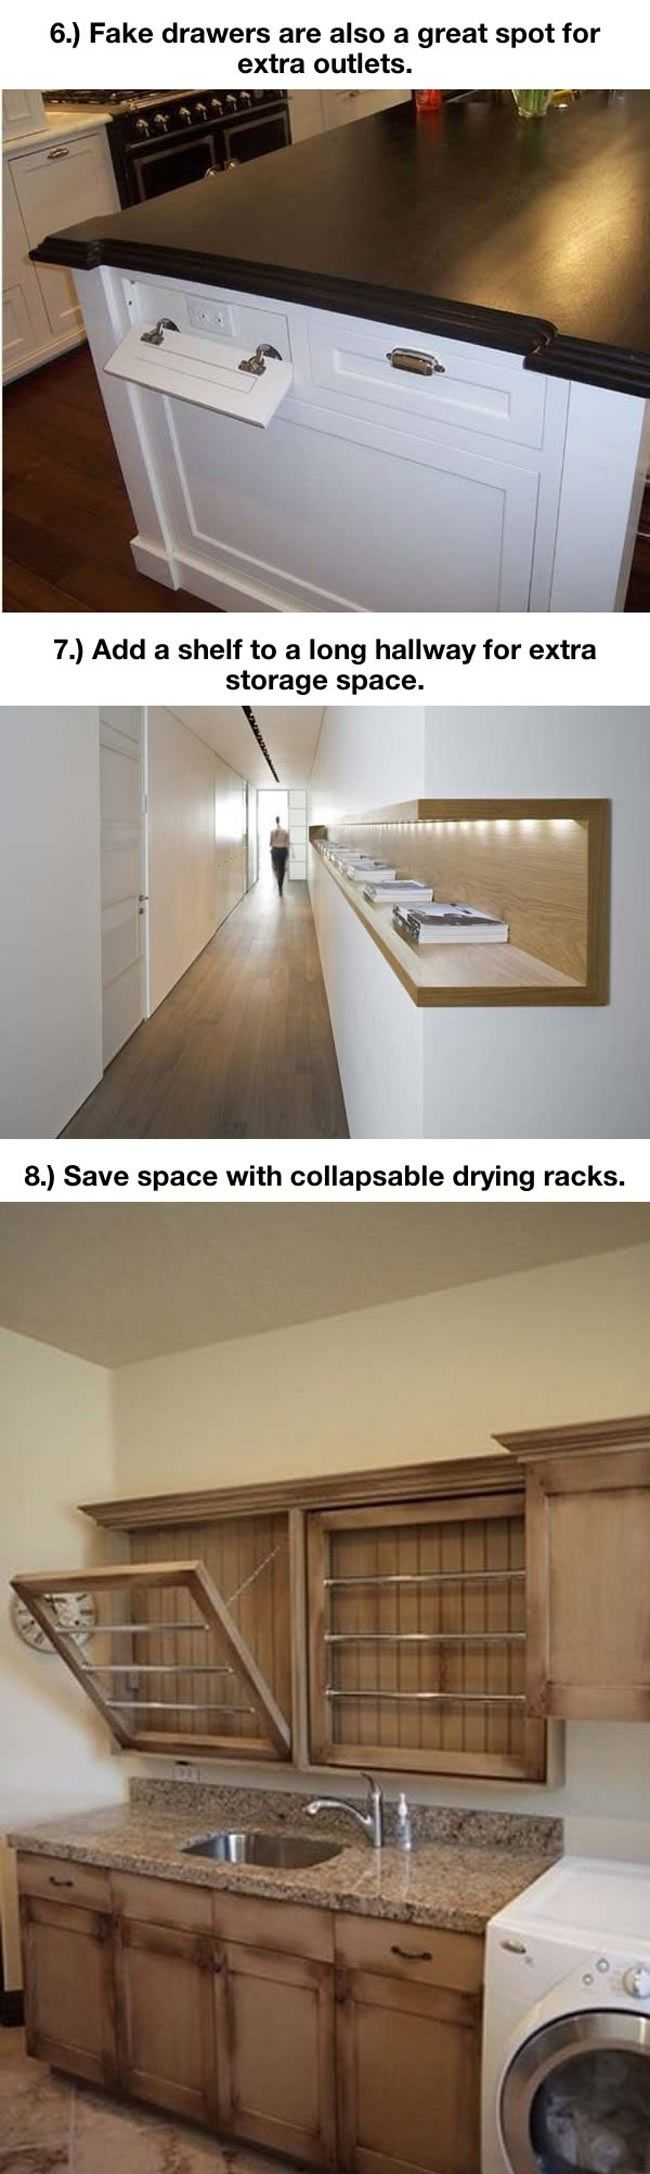 Insanely Clever Upgrades To Make Your Home Awesome... - Viralfury